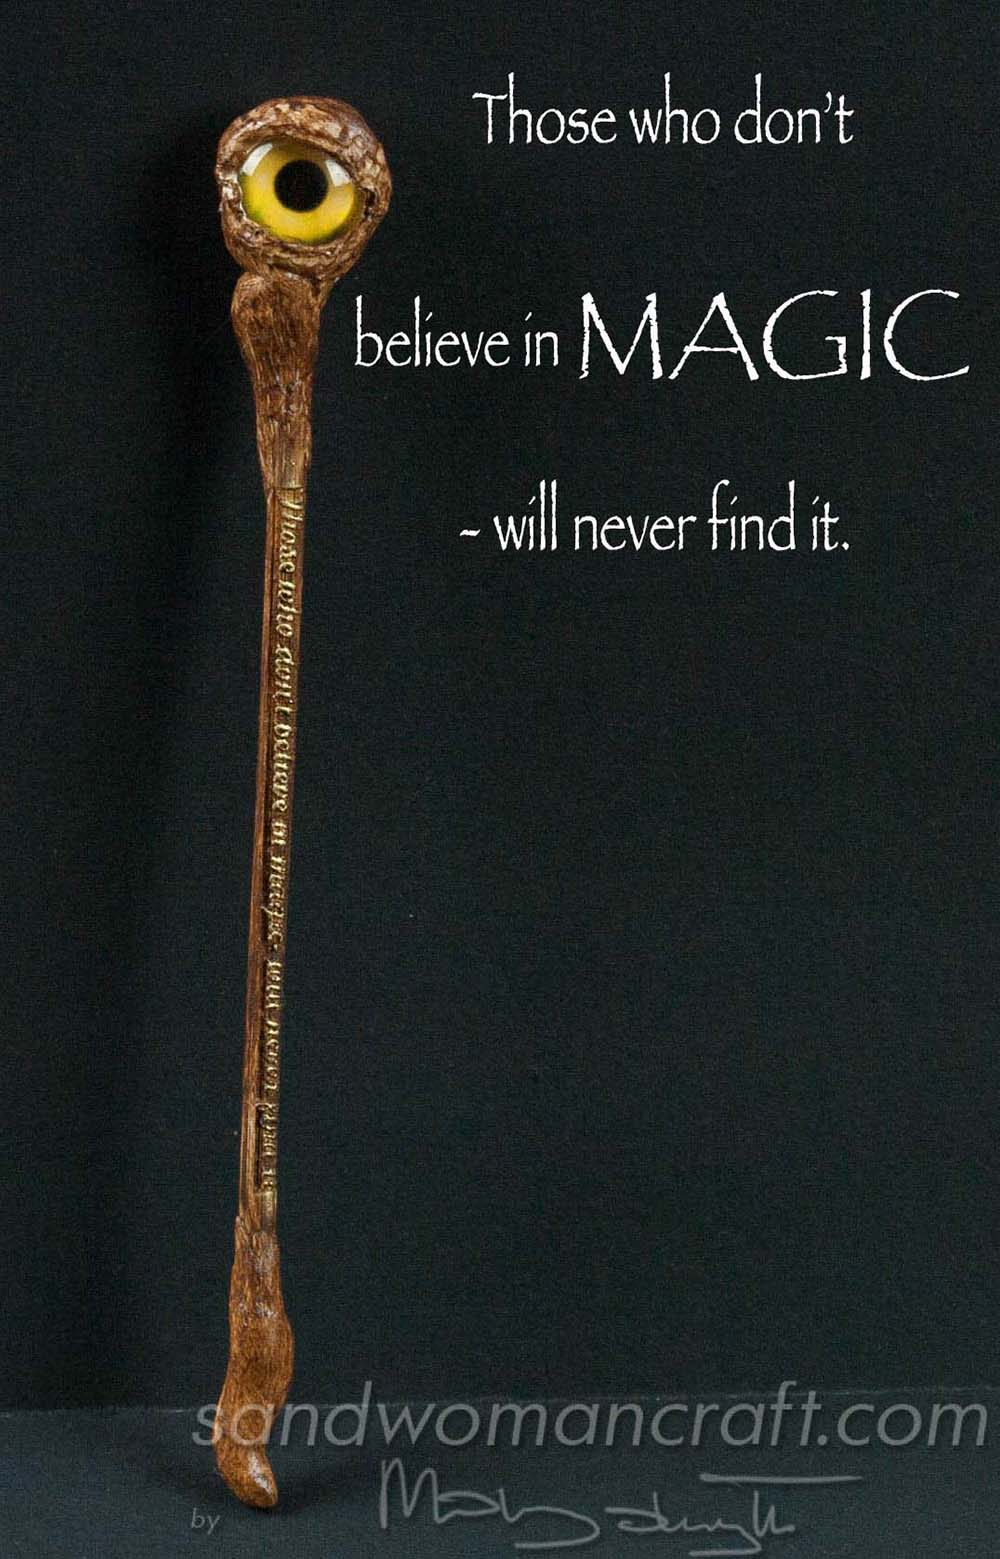 Miniature magic walking stick with glass eye